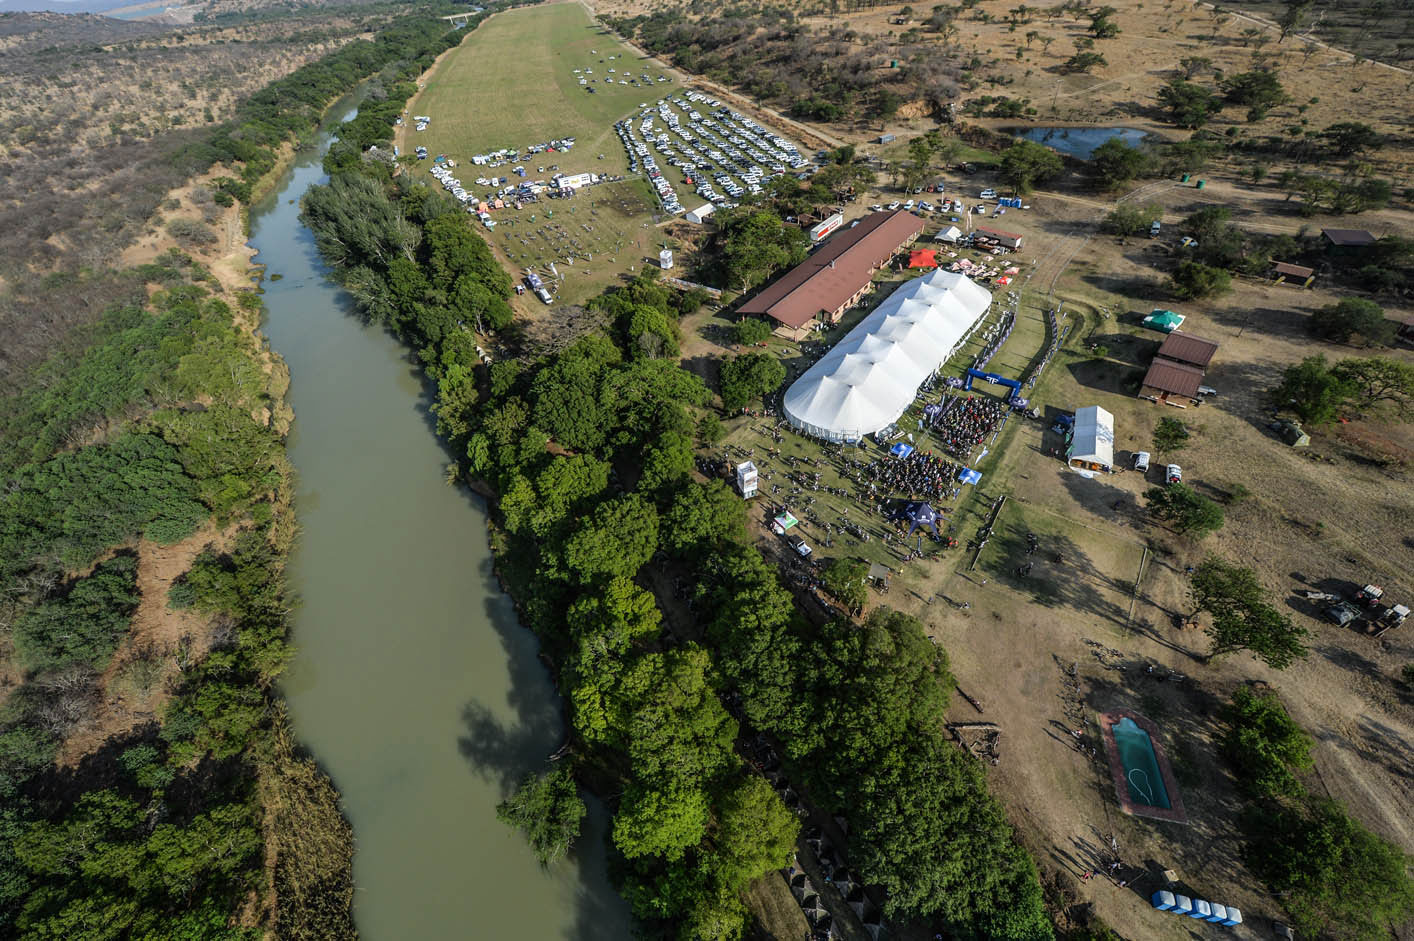 Berg And Bush Race Village Aerial View